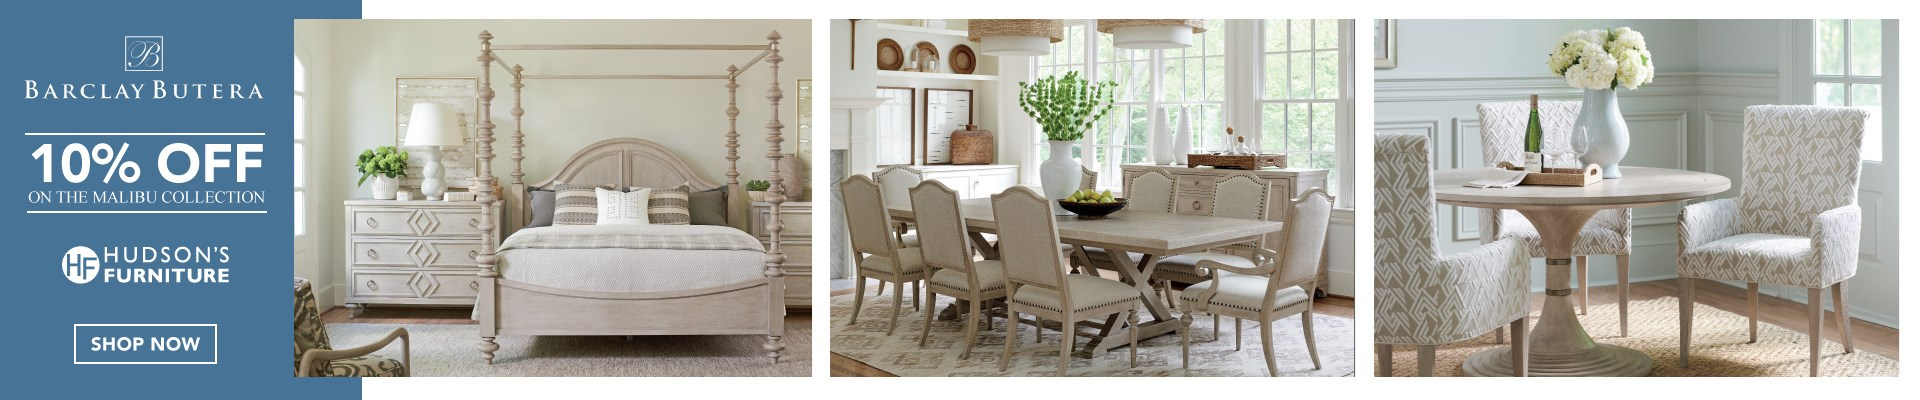 Malibu Collection Now Available At Hudson's Furniture